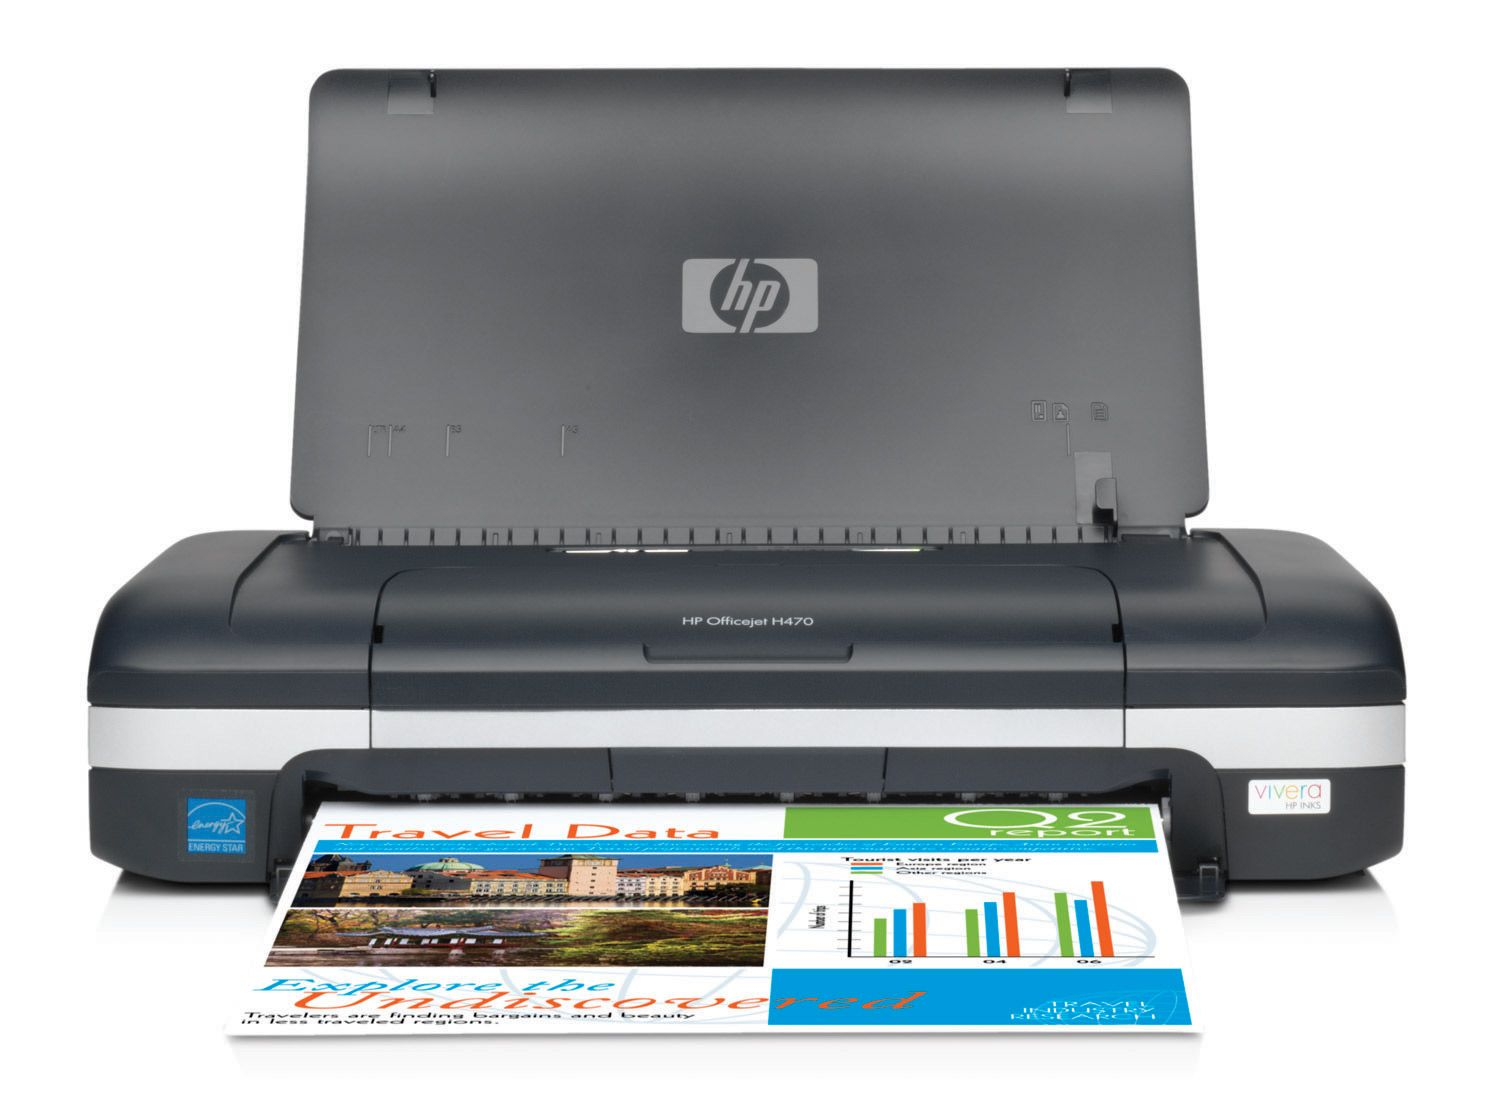 How to connect to HP wireless direct: Turn on HP wireless ...